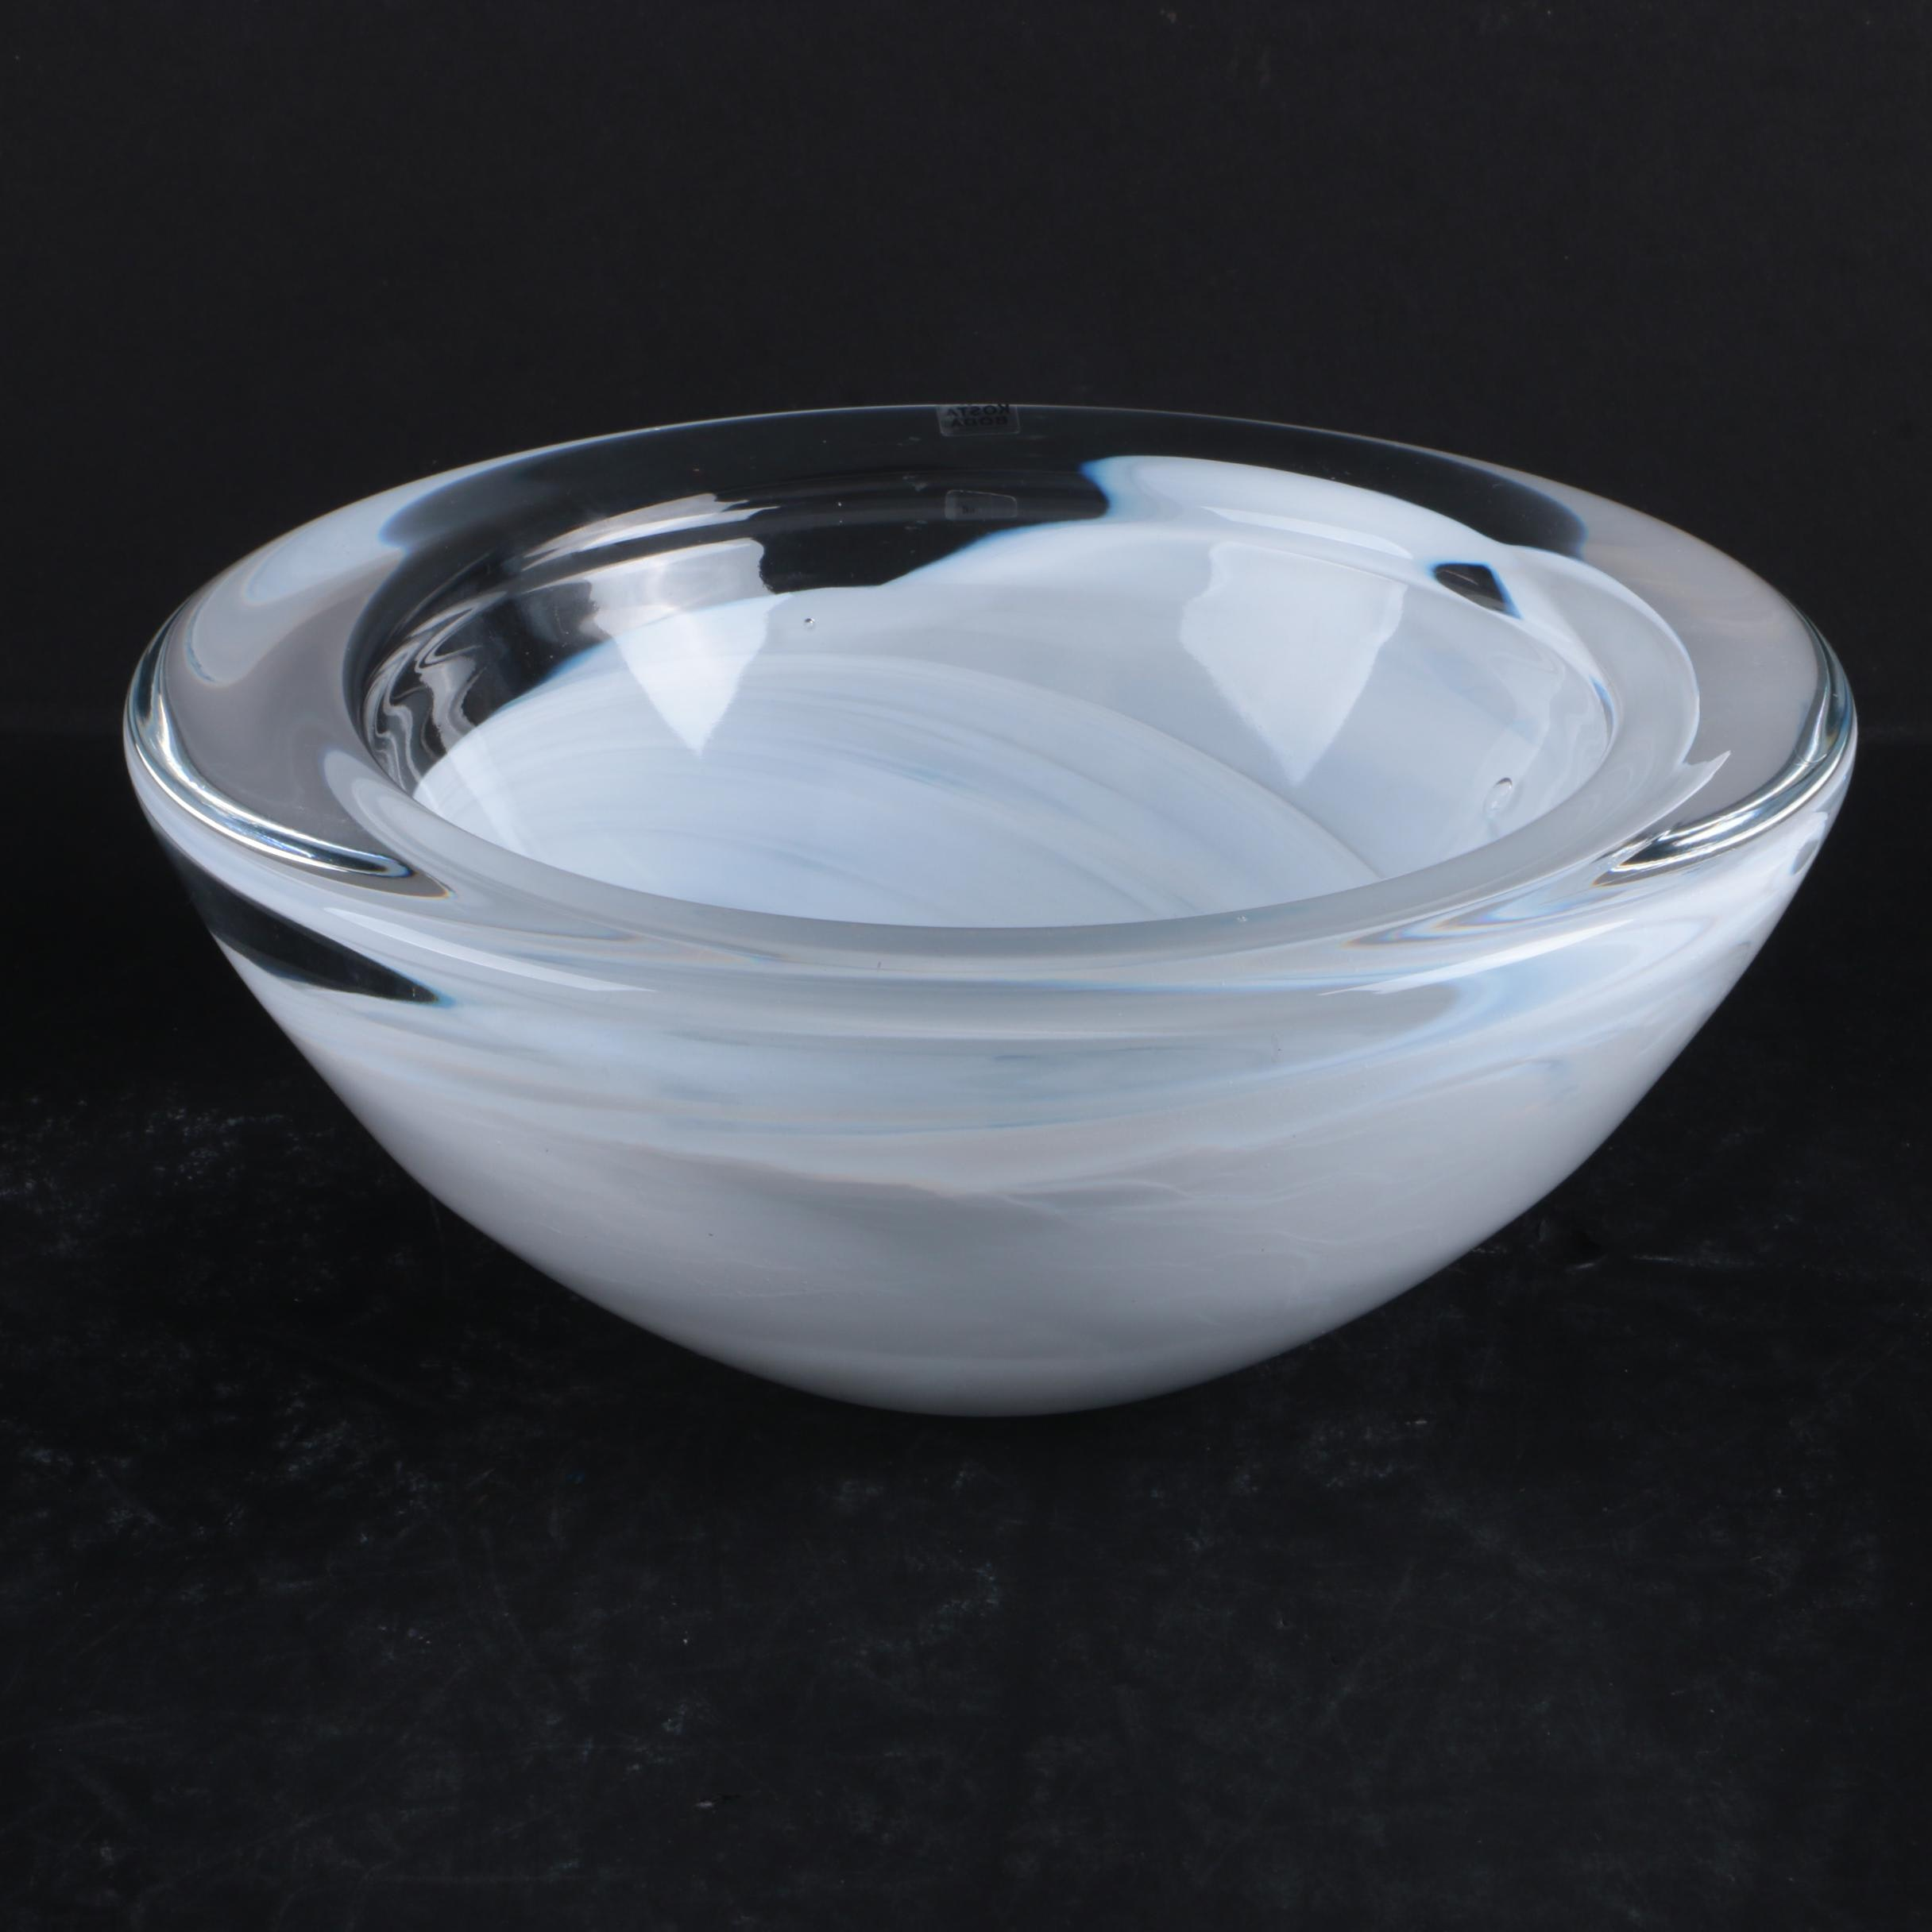 Kosta Boda White Art Glass Bowl